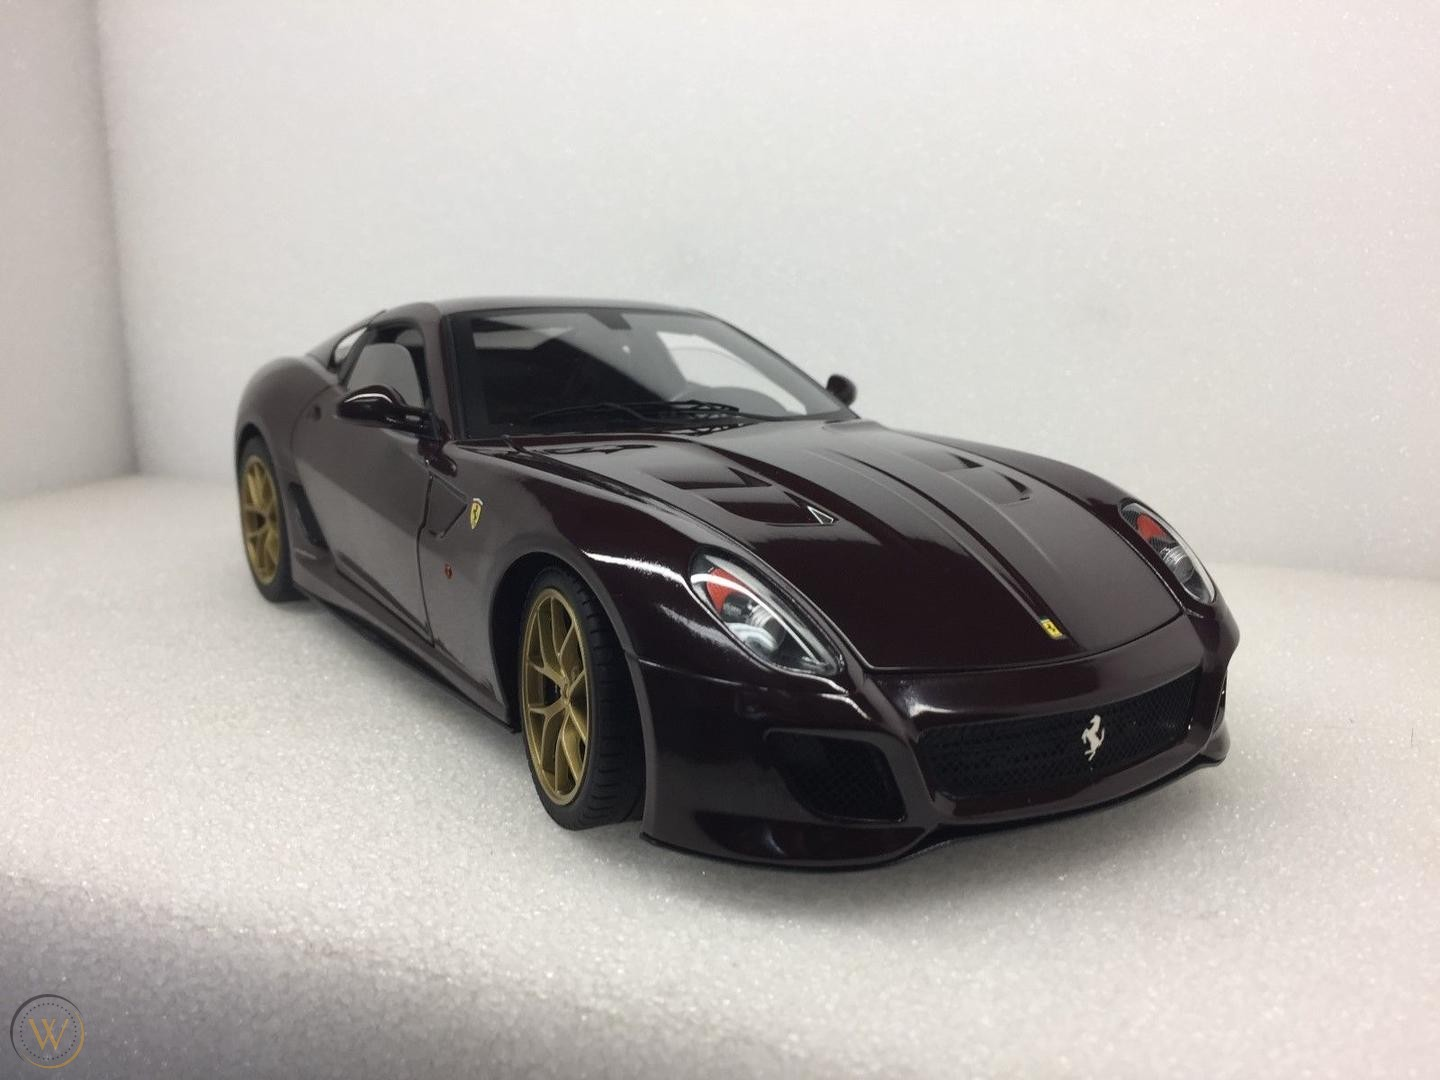 Ferrari 599 Gto Michael Mann Burgundy Hot Wheels Elite Diecast Depot